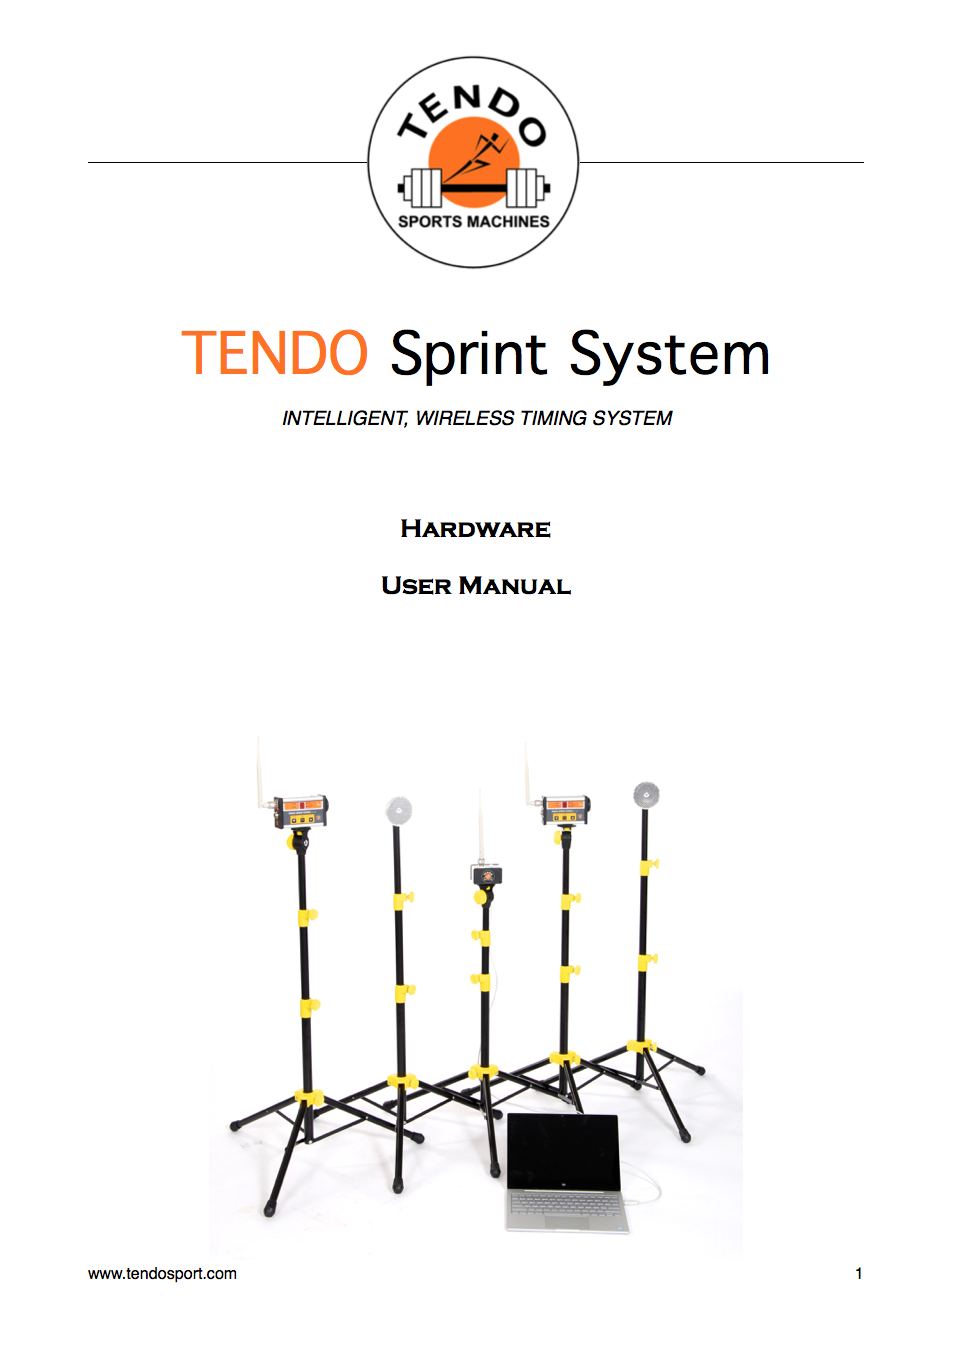 Tendo Sprint System hardware manual cover